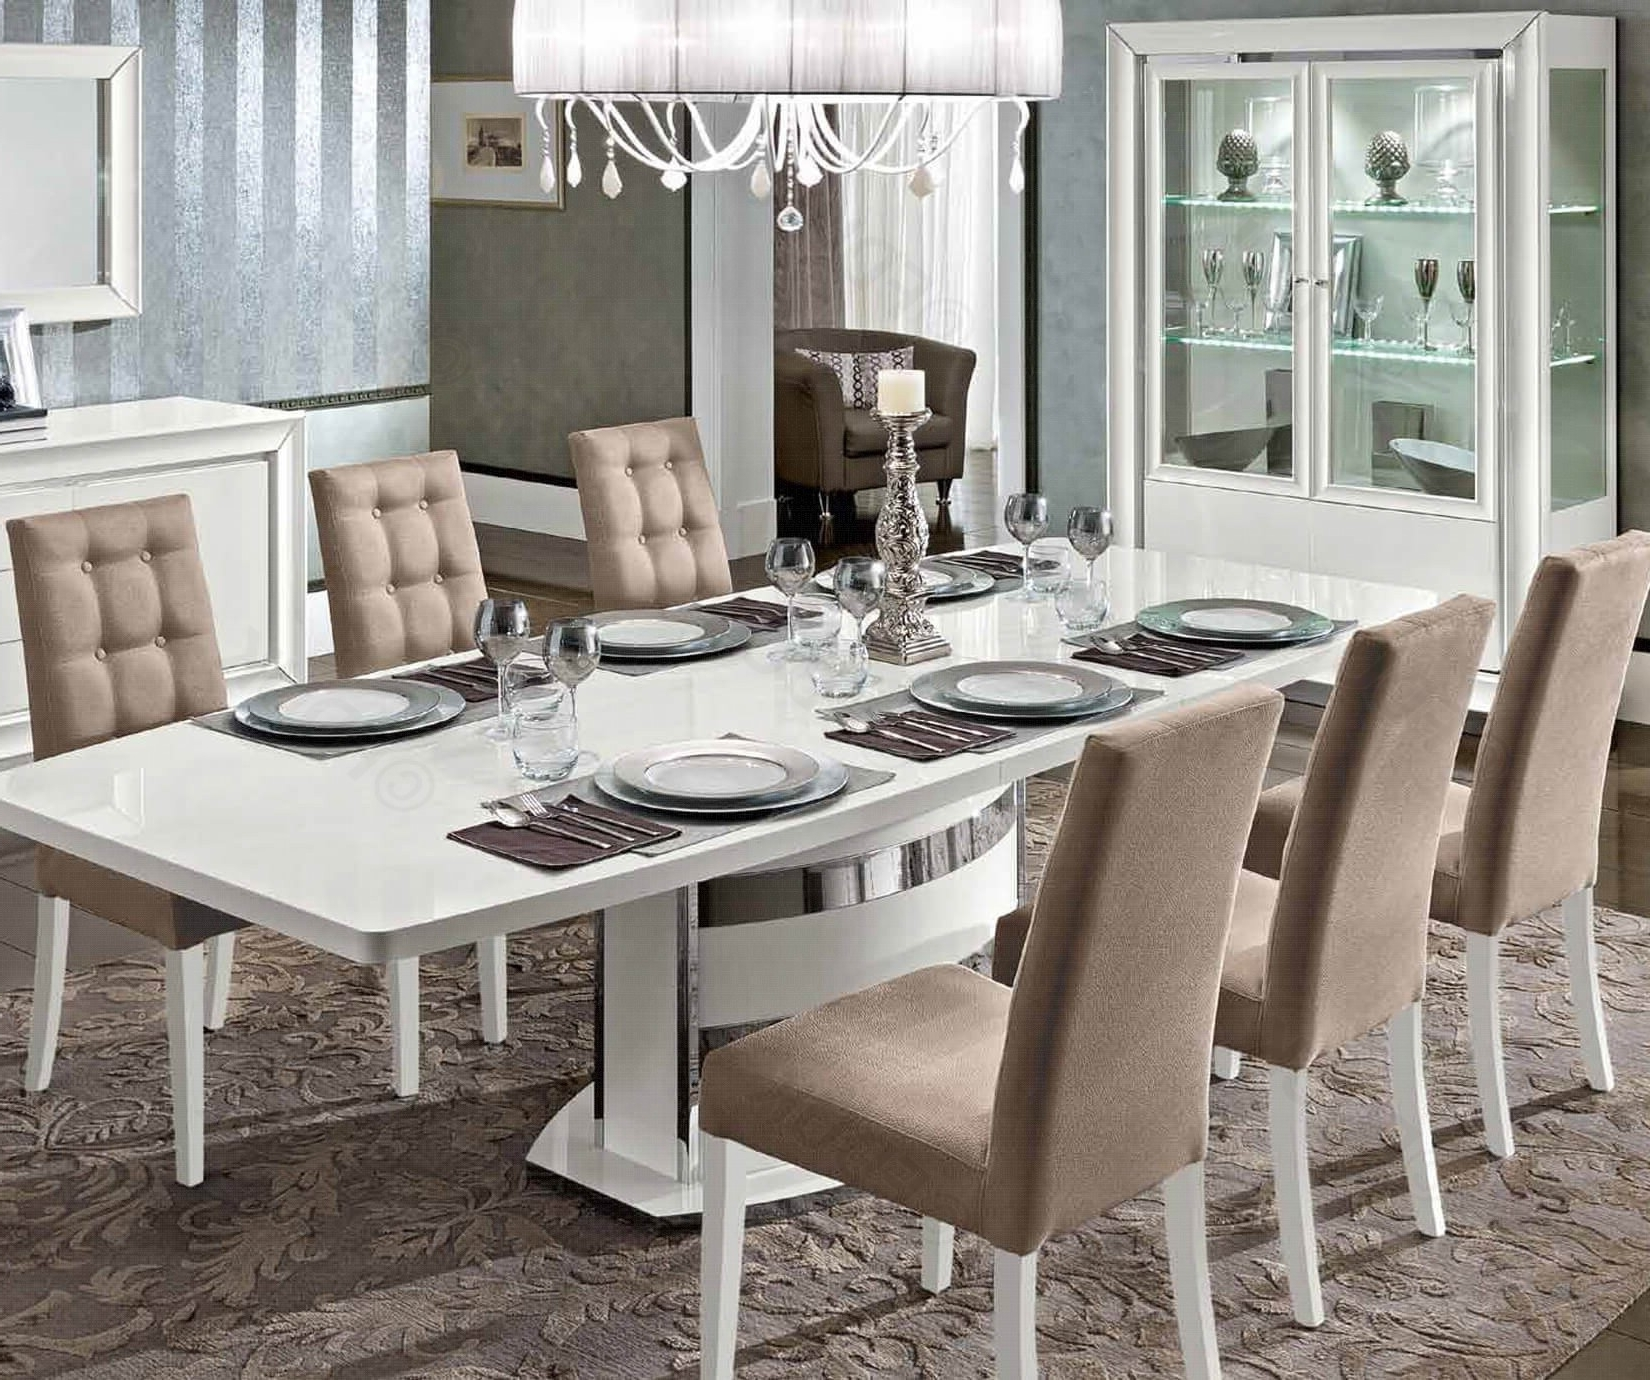 2018 Camel Group Roma White High Gloss Extending Dining Table With 6 Regarding High Gloss Extendable Dining Tables (View 22 of 25)